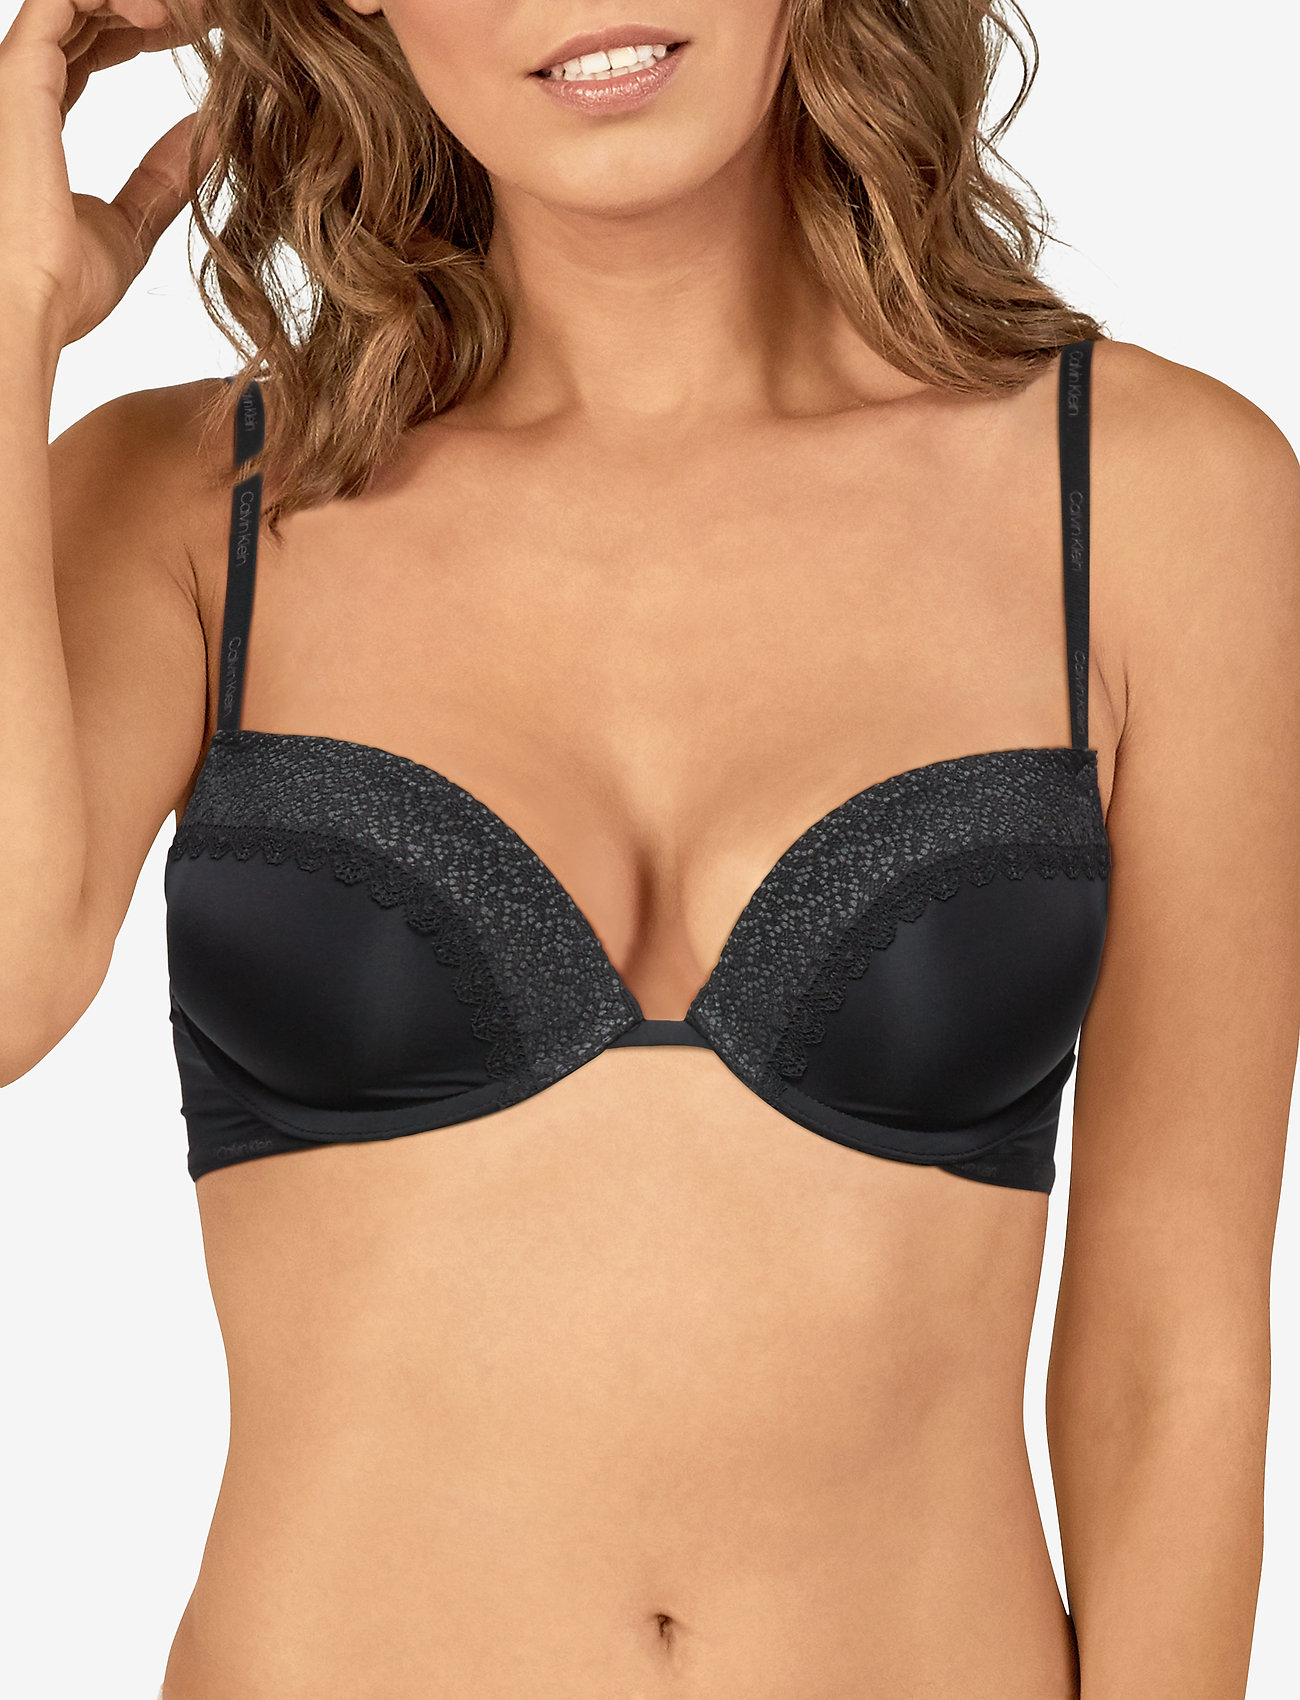 Calvin Klein PUSH UP PLUNGE - BLACK